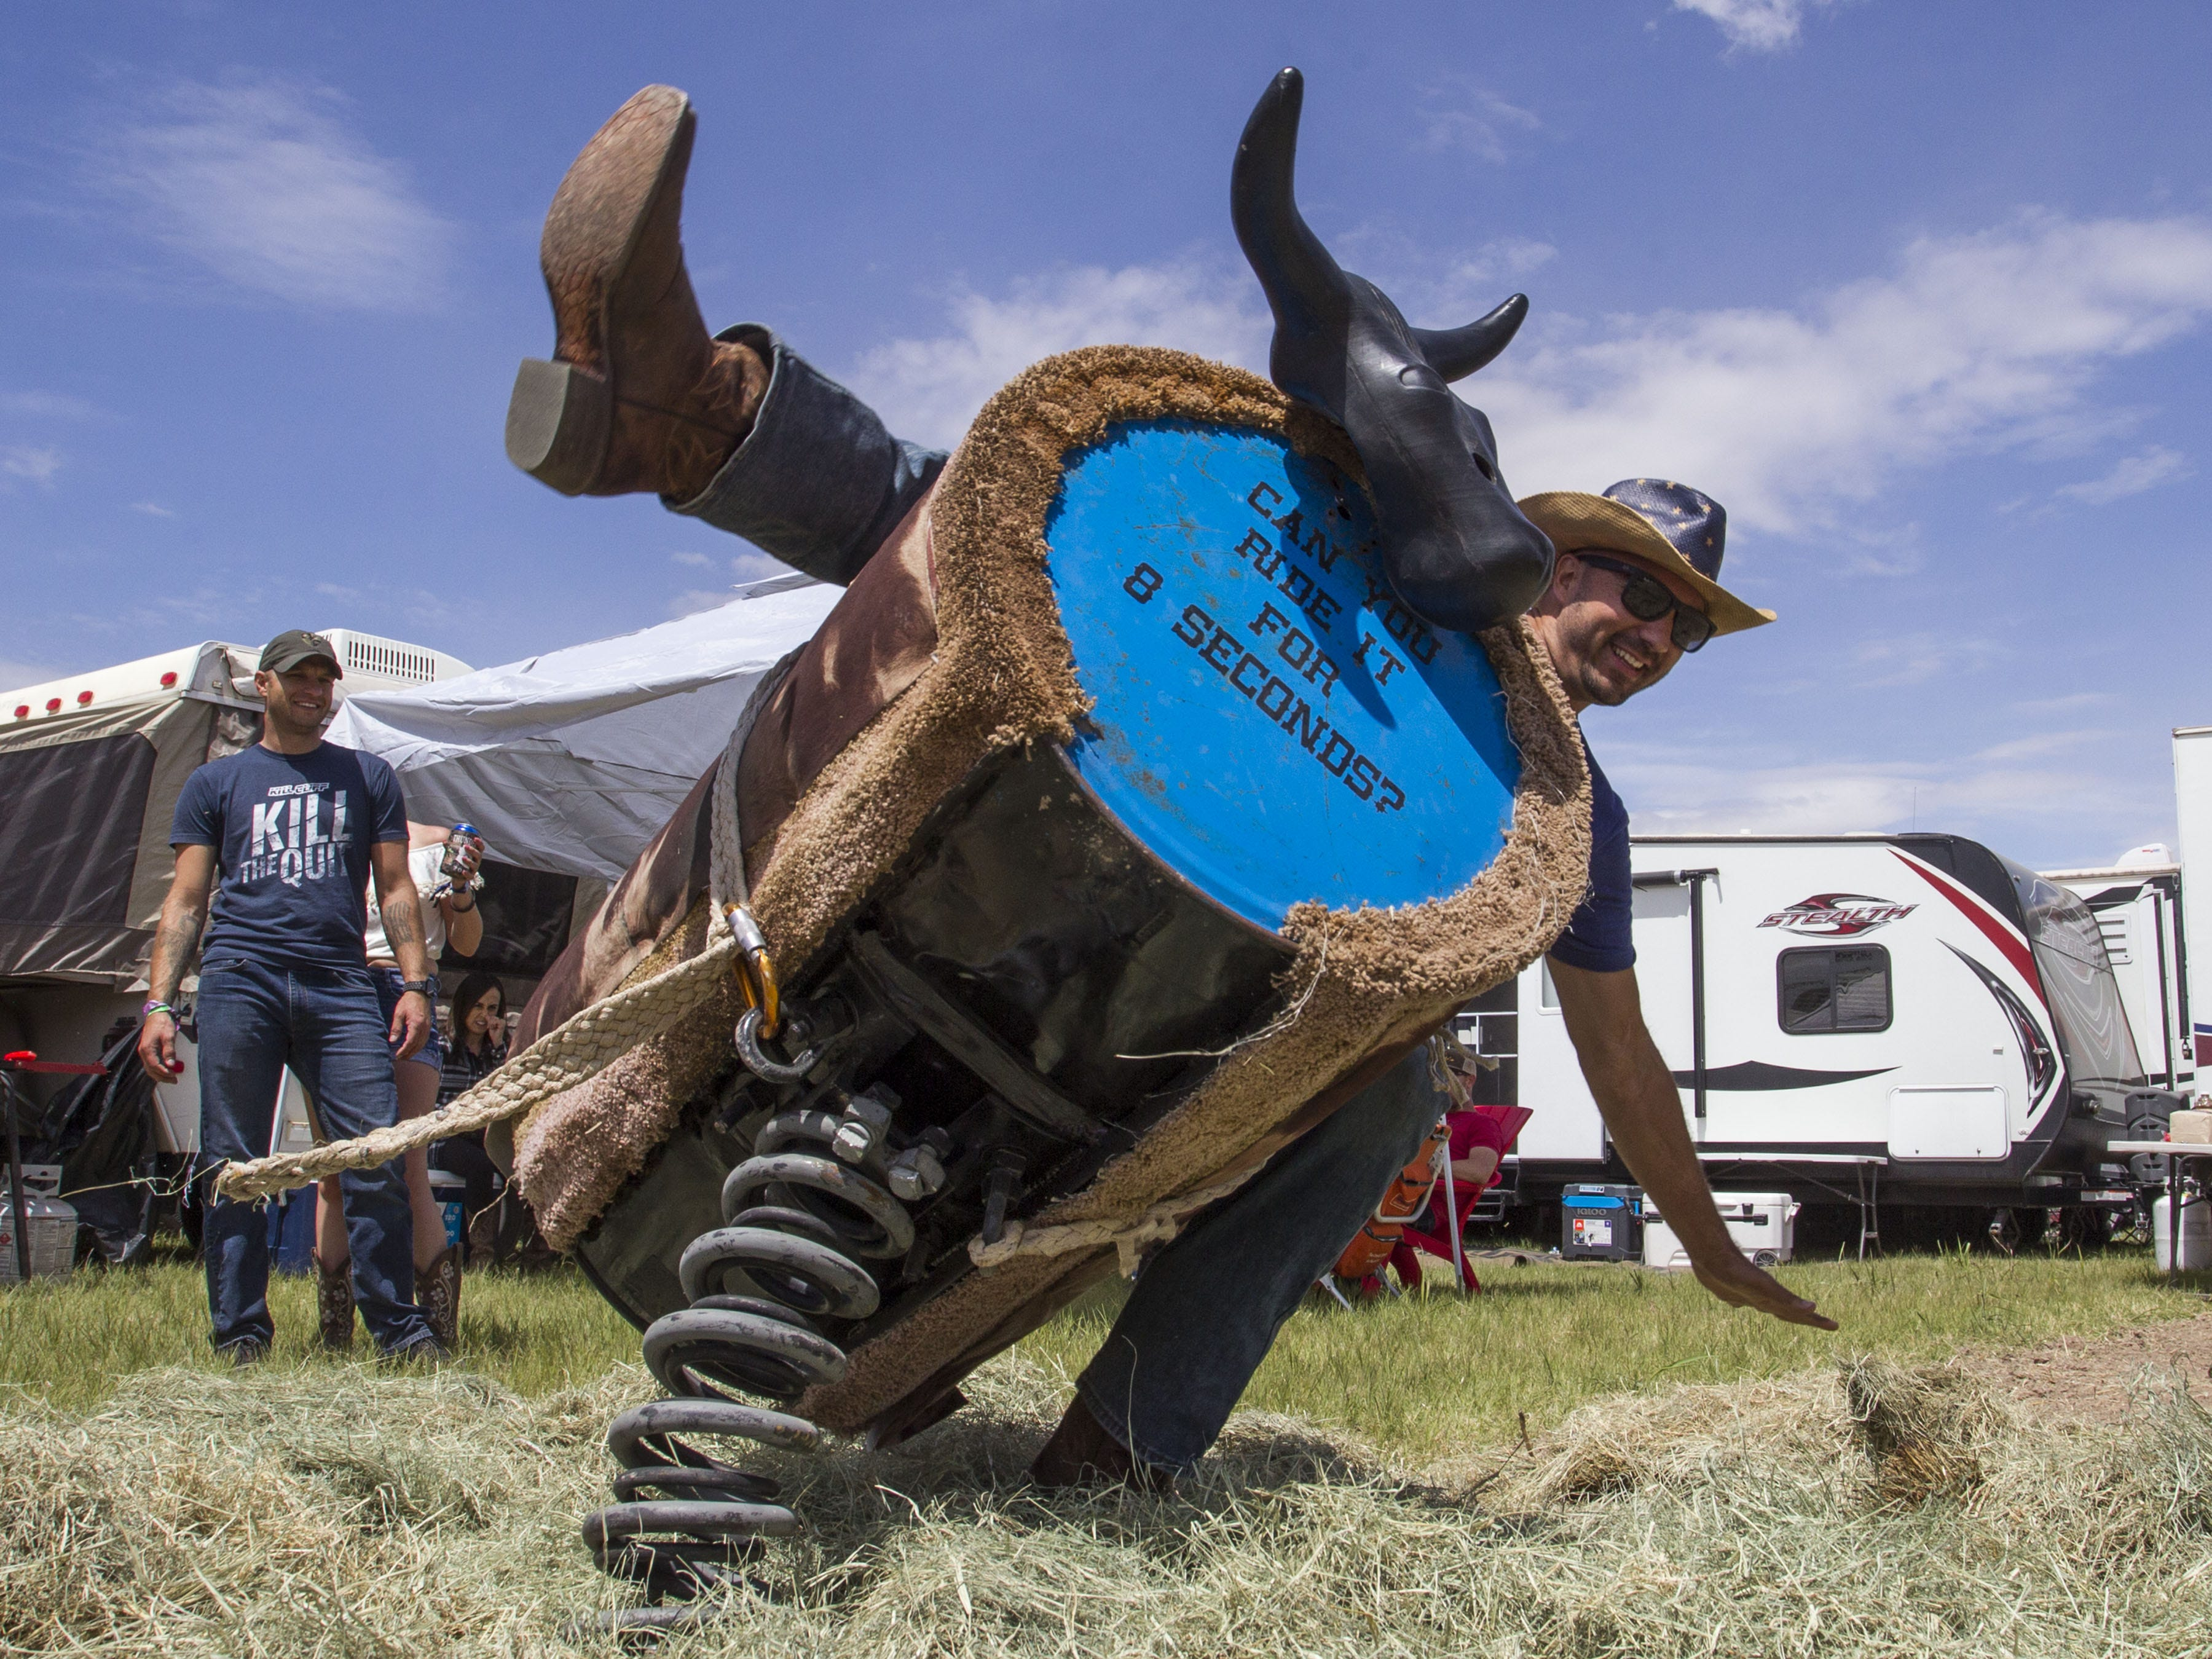 Daniel Valencia flies off the bull at I Love This Camp during Country Thunder Arizona Friday, April 12, 2019, in Florence, Ariz.